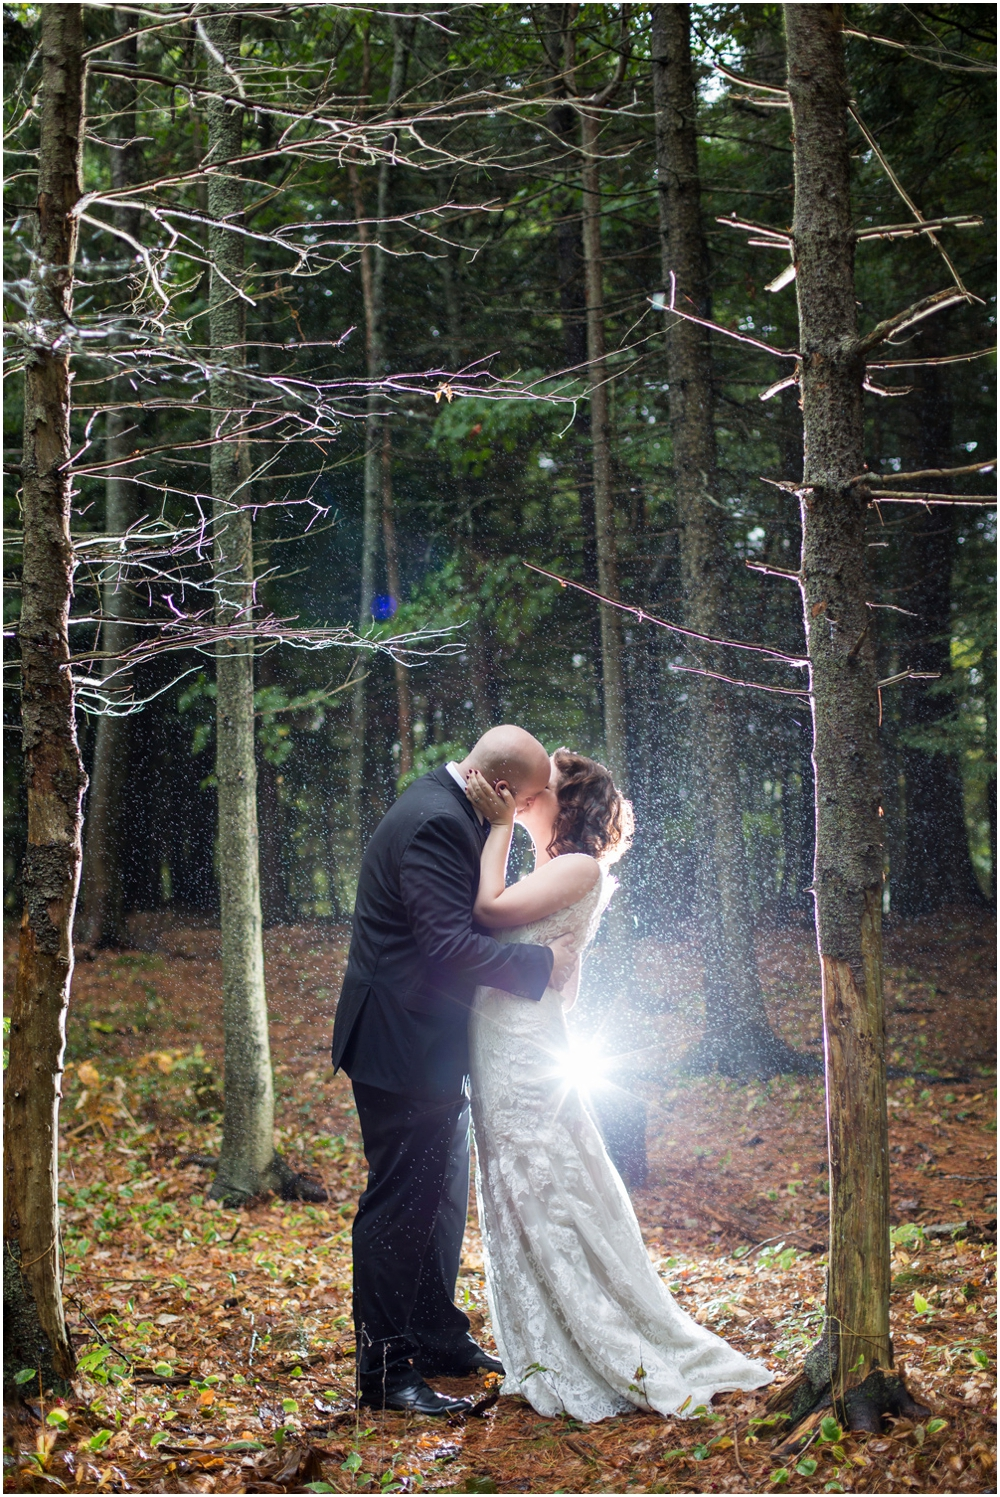 Rainy-Halifax-Weddings-Chantal-Ruthier-Photography_0003.jpg